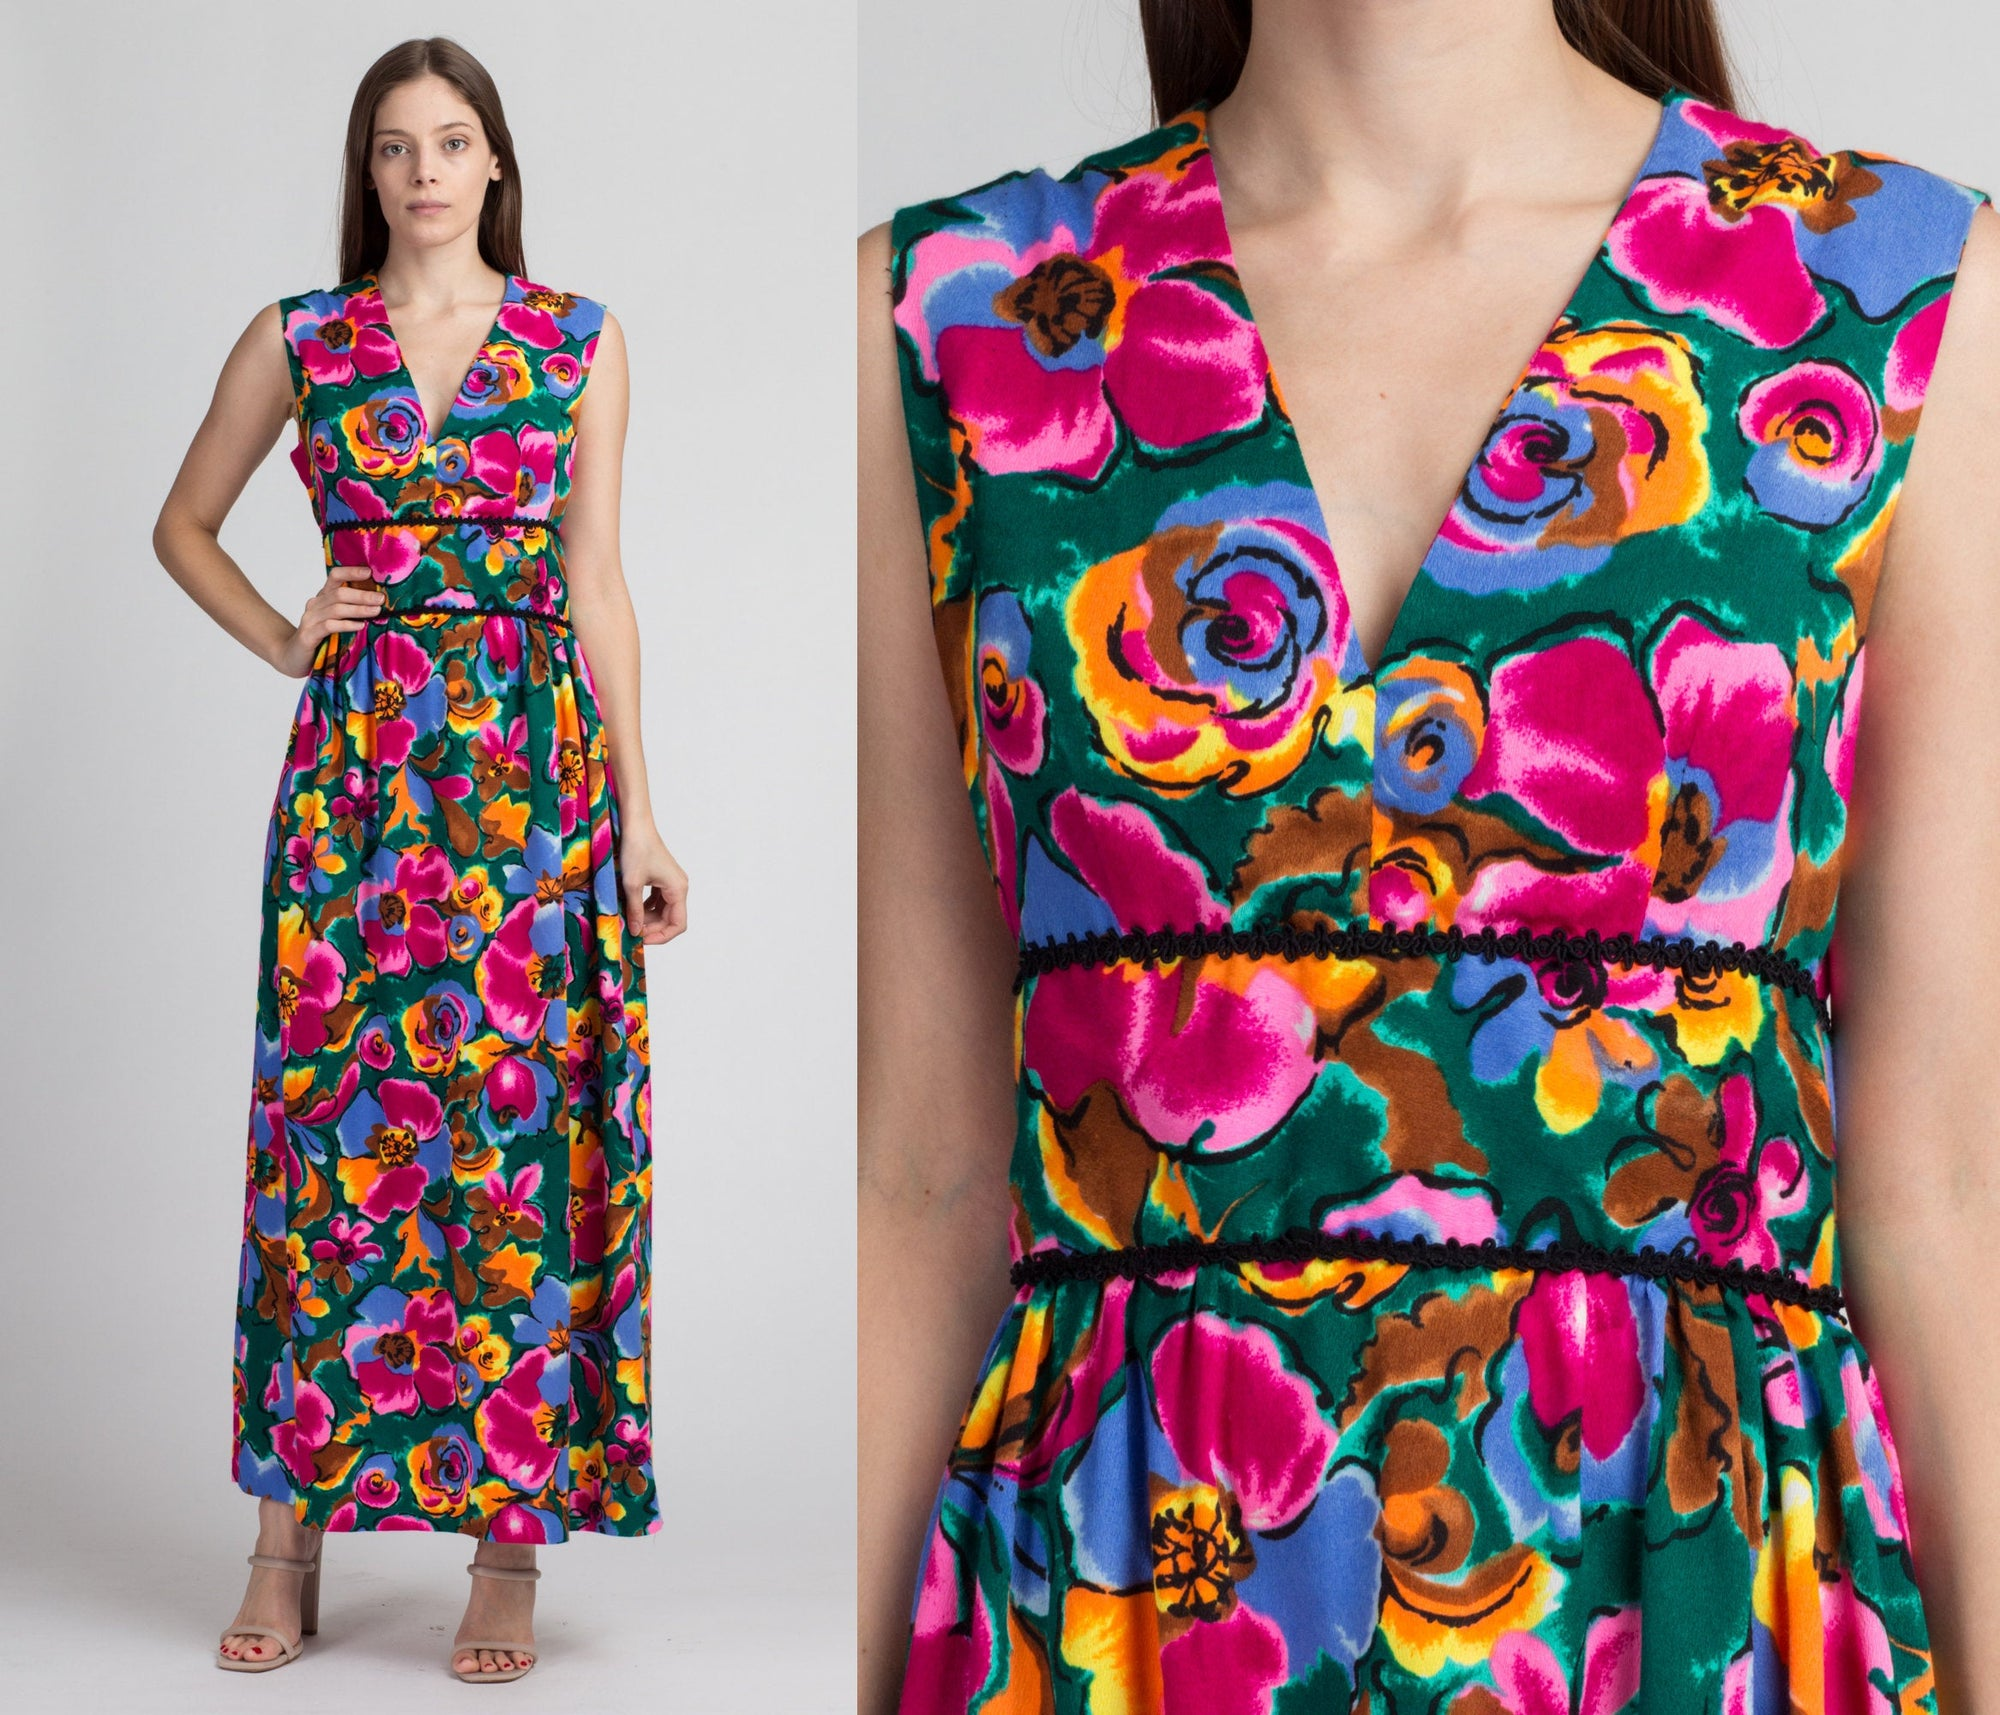 60s 70s Hawaiian Bright Floral Maxi Dress - Medium